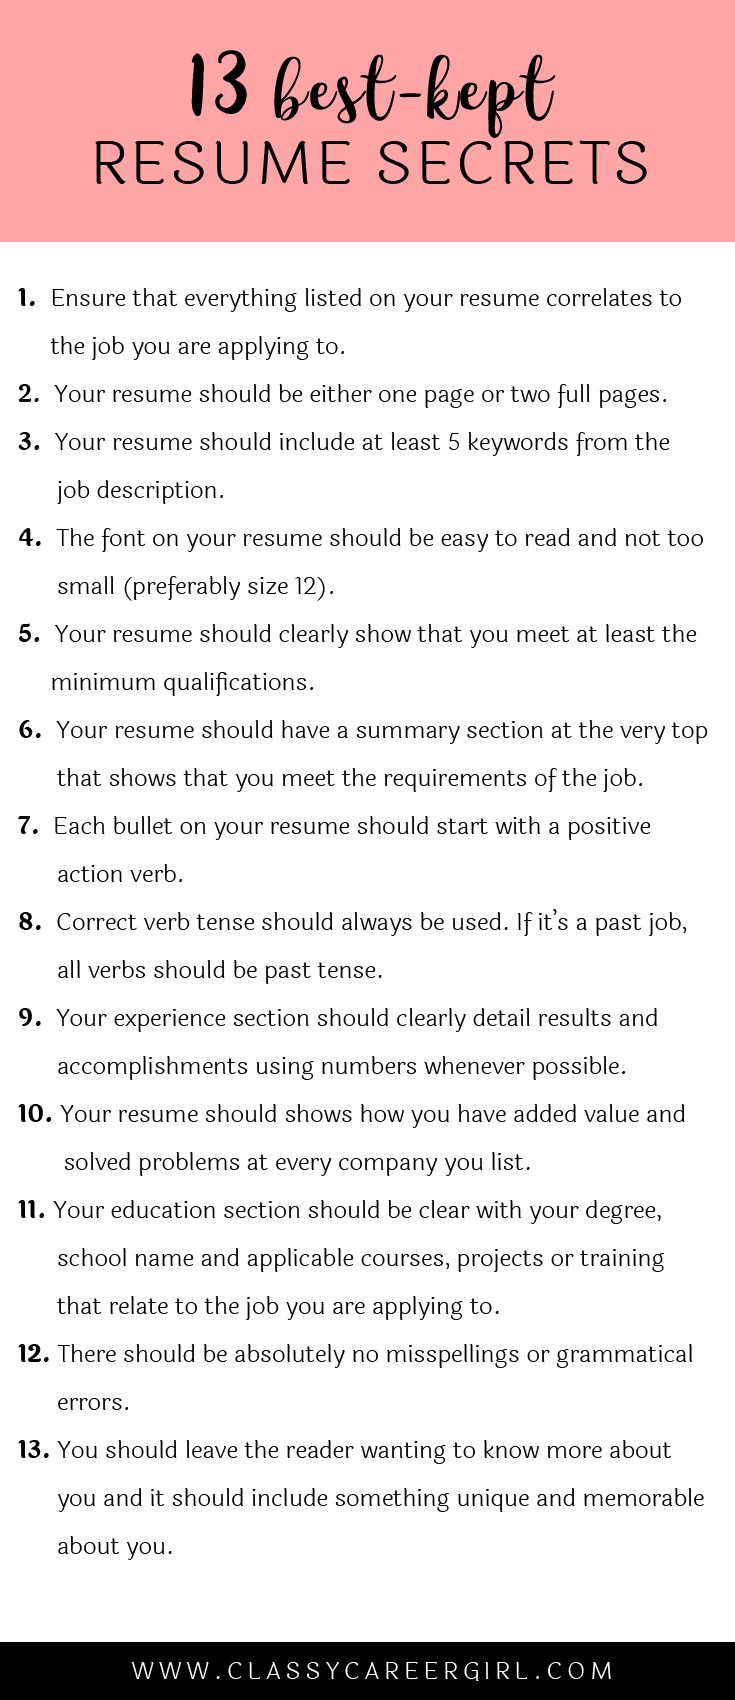 Opposenewapstandardsus  Pleasing  Ideas About Resume On Pinterest  Cv Format Resume Cv And  With Fetching Some Hiring Managers Will Toss Your Resume Out If You Dont Know These  With Appealing Best Resume Objective Statements Also Teachers Resumes In Addition  Dispatcher Resume And Good Resume Profile Examples As Well As Professional Affiliations Resume Additionally Promotion Resume From Pinterestcom With Opposenewapstandardsus  Fetching  Ideas About Resume On Pinterest  Cv Format Resume Cv And  With Appealing Some Hiring Managers Will Toss Your Resume Out If You Dont Know These  And Pleasing Best Resume Objective Statements Also Teachers Resumes In Addition  Dispatcher Resume From Pinterestcom